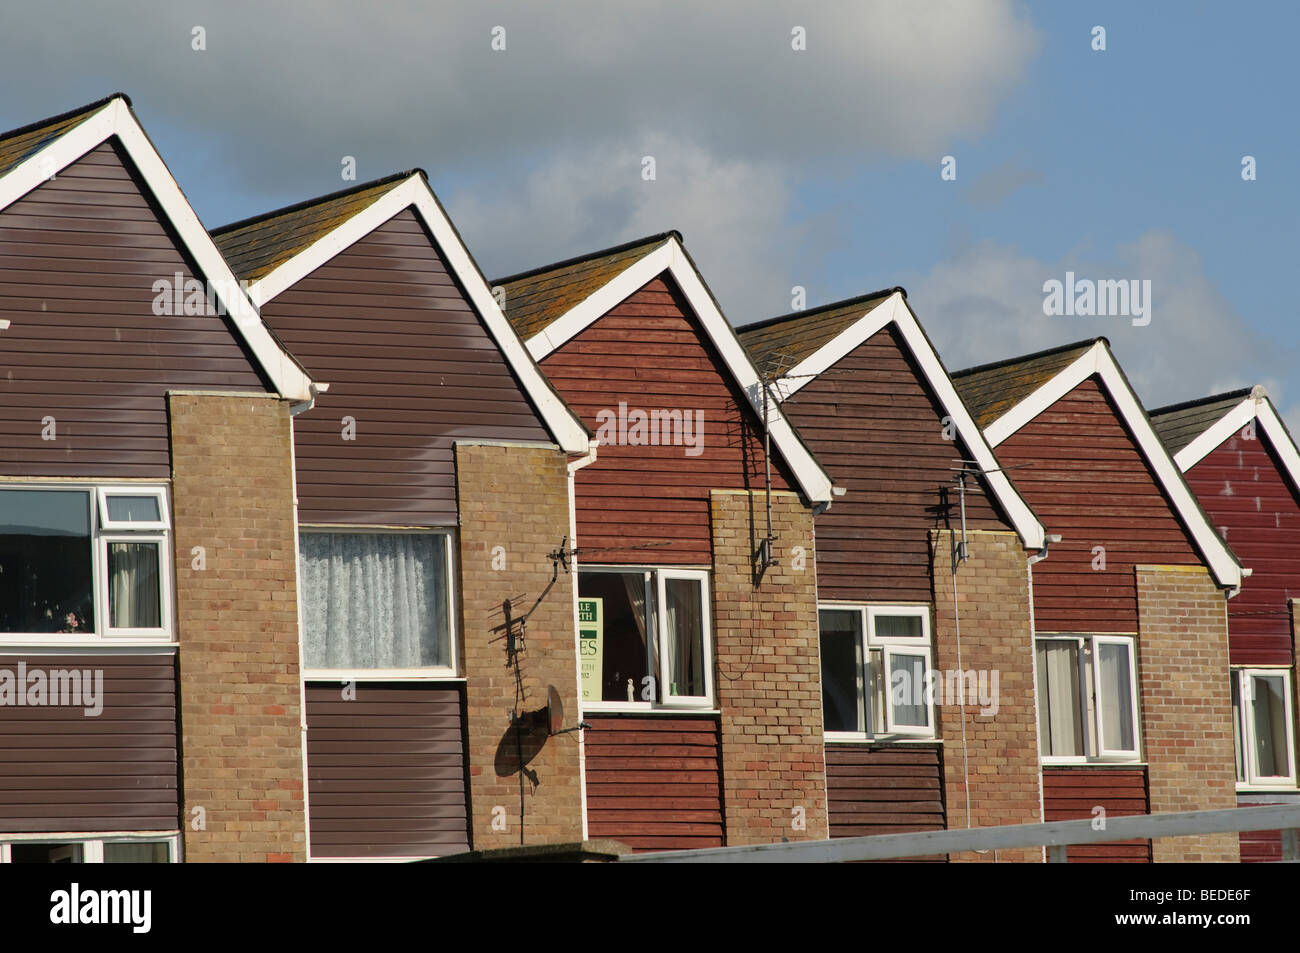 Row of  identical houses built in the 1970's in Tywyn Gwynedd north wales UK - Stock Image